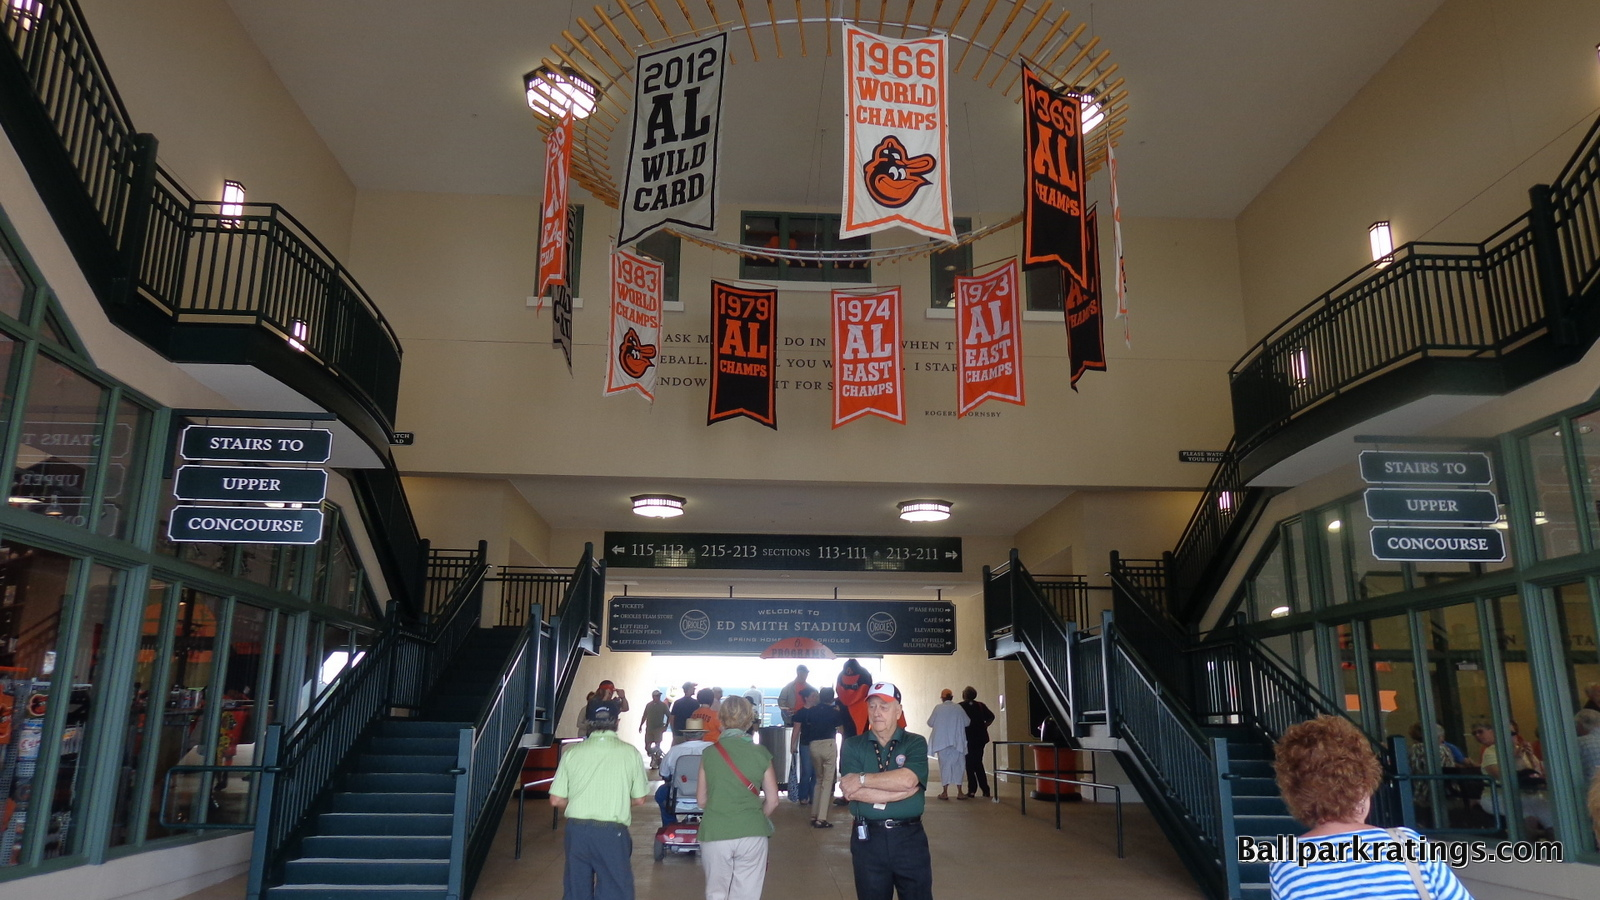 Ed Smith Stadium bat chandelier with pennant banners.